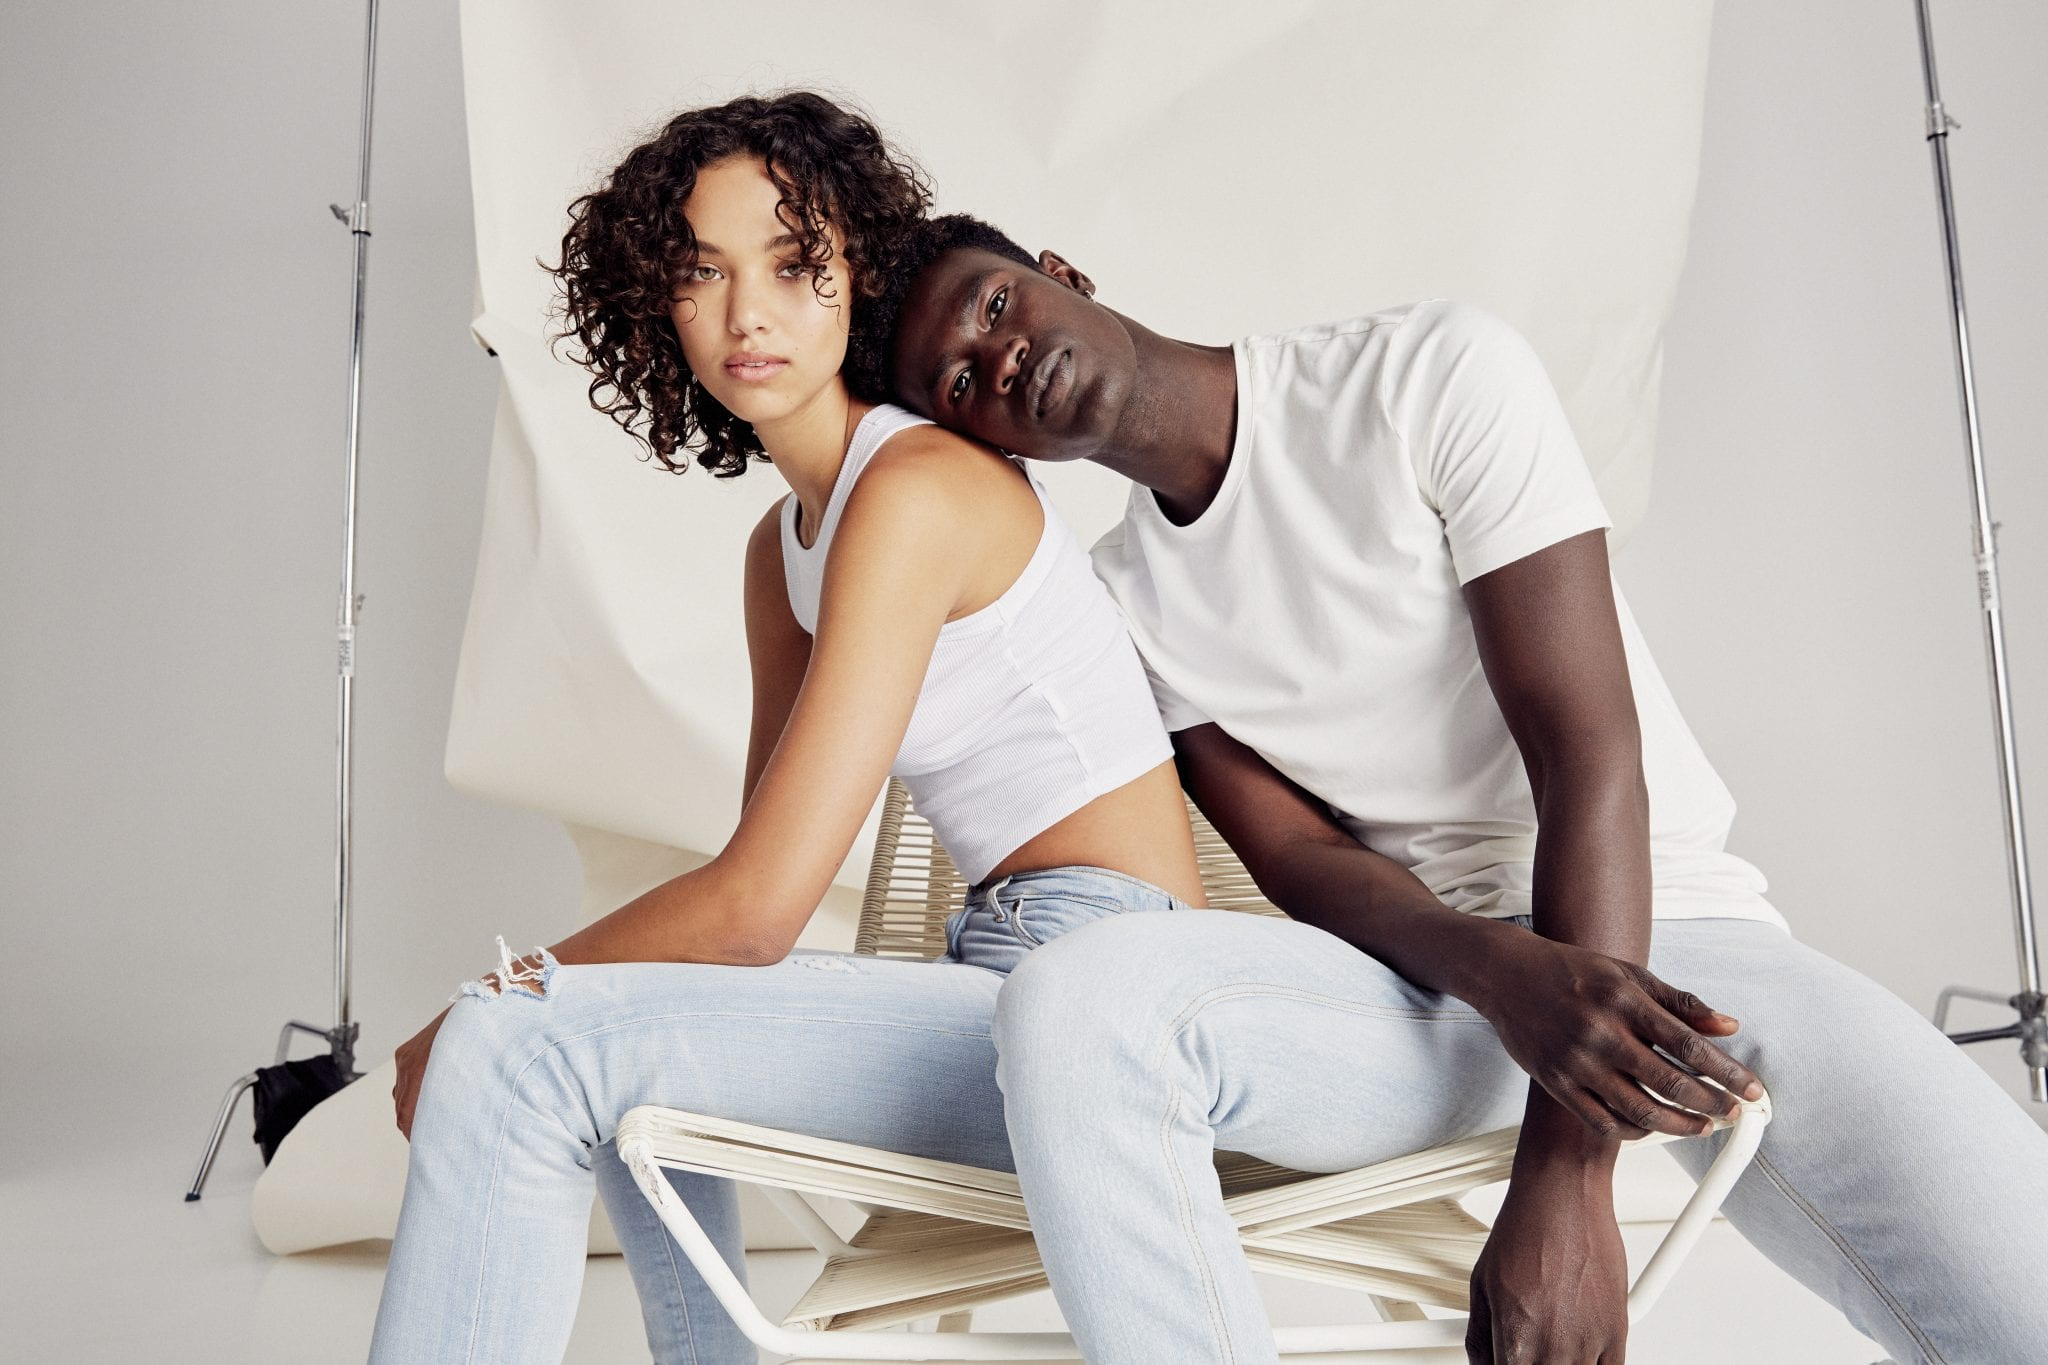 girl and guy in light sustainable jeans sitting in a photoshoot